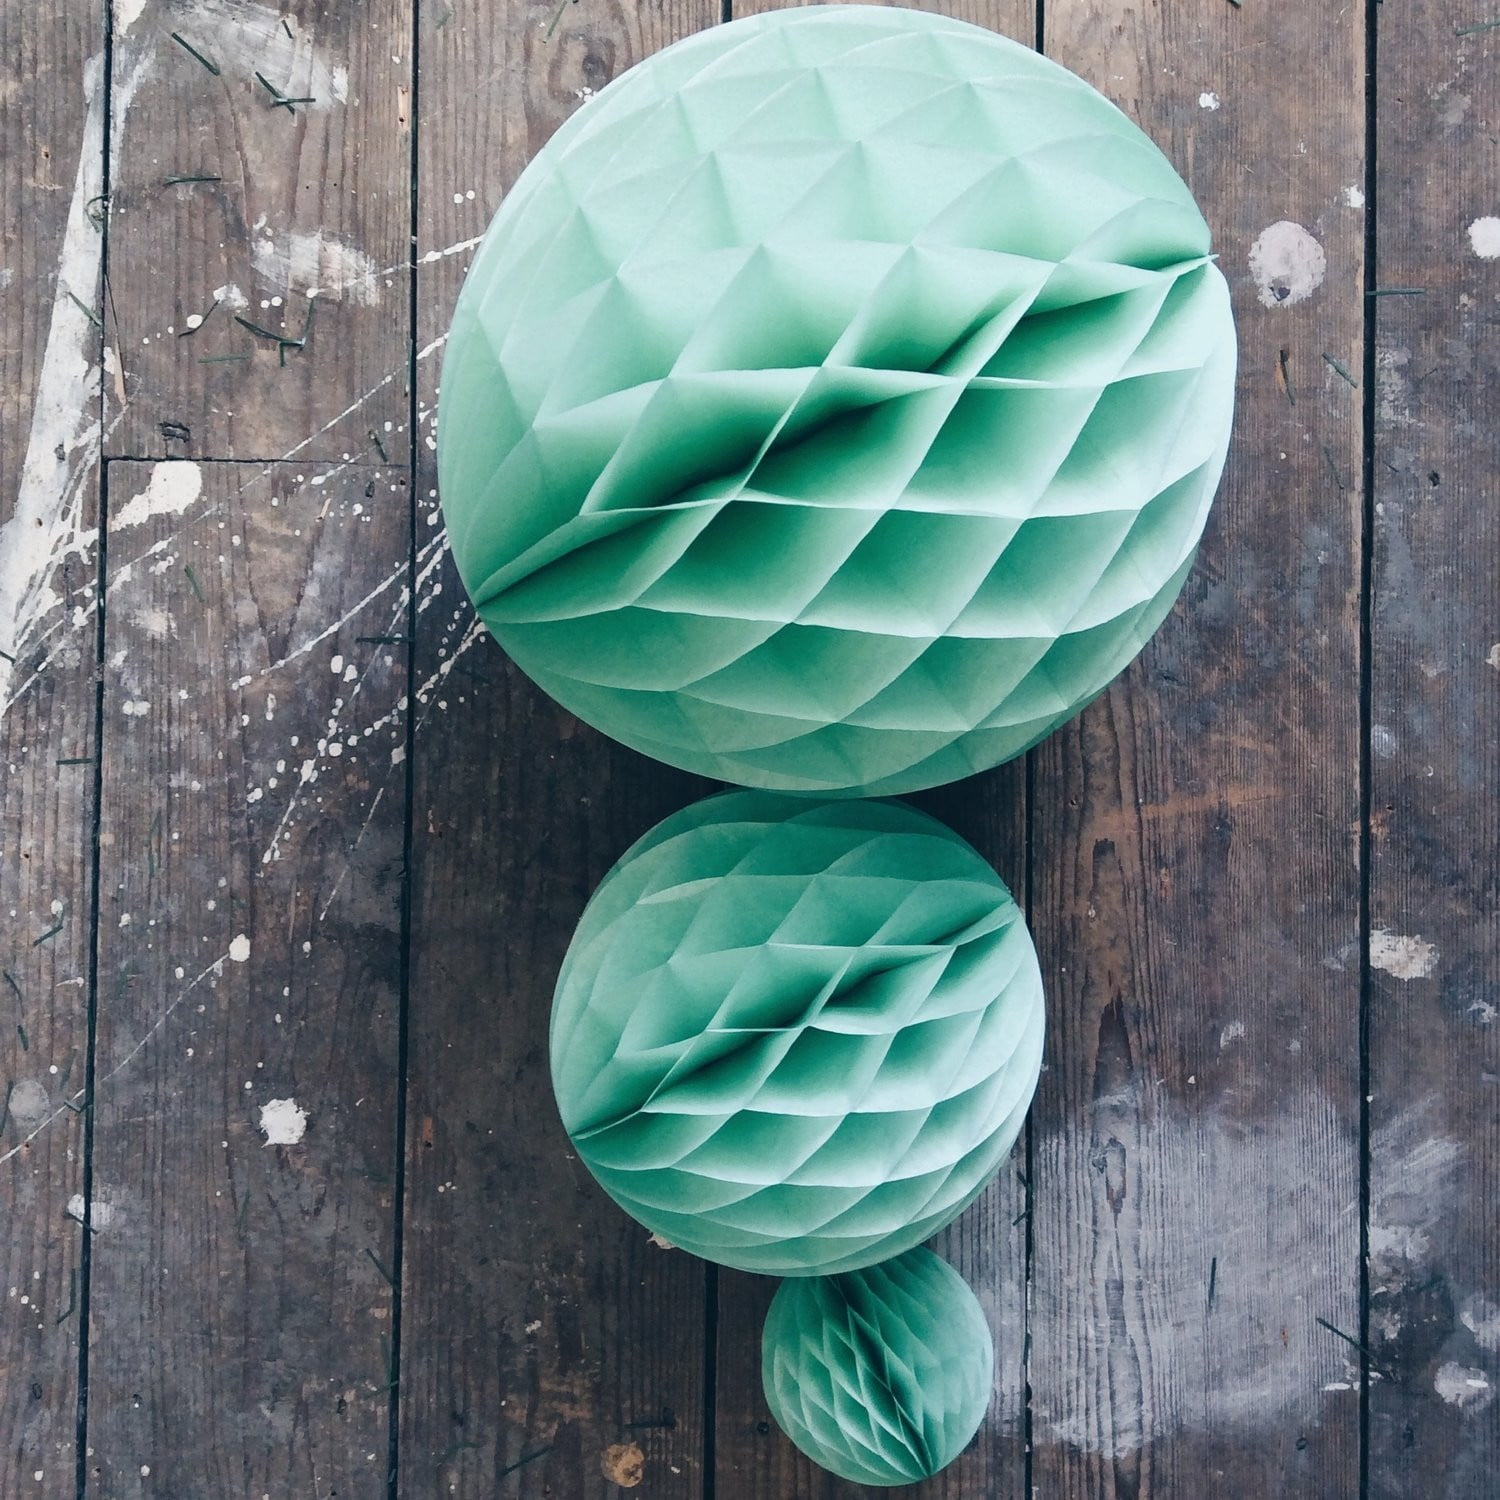 Mint Green Honeycomb Ball - Sunbeauty